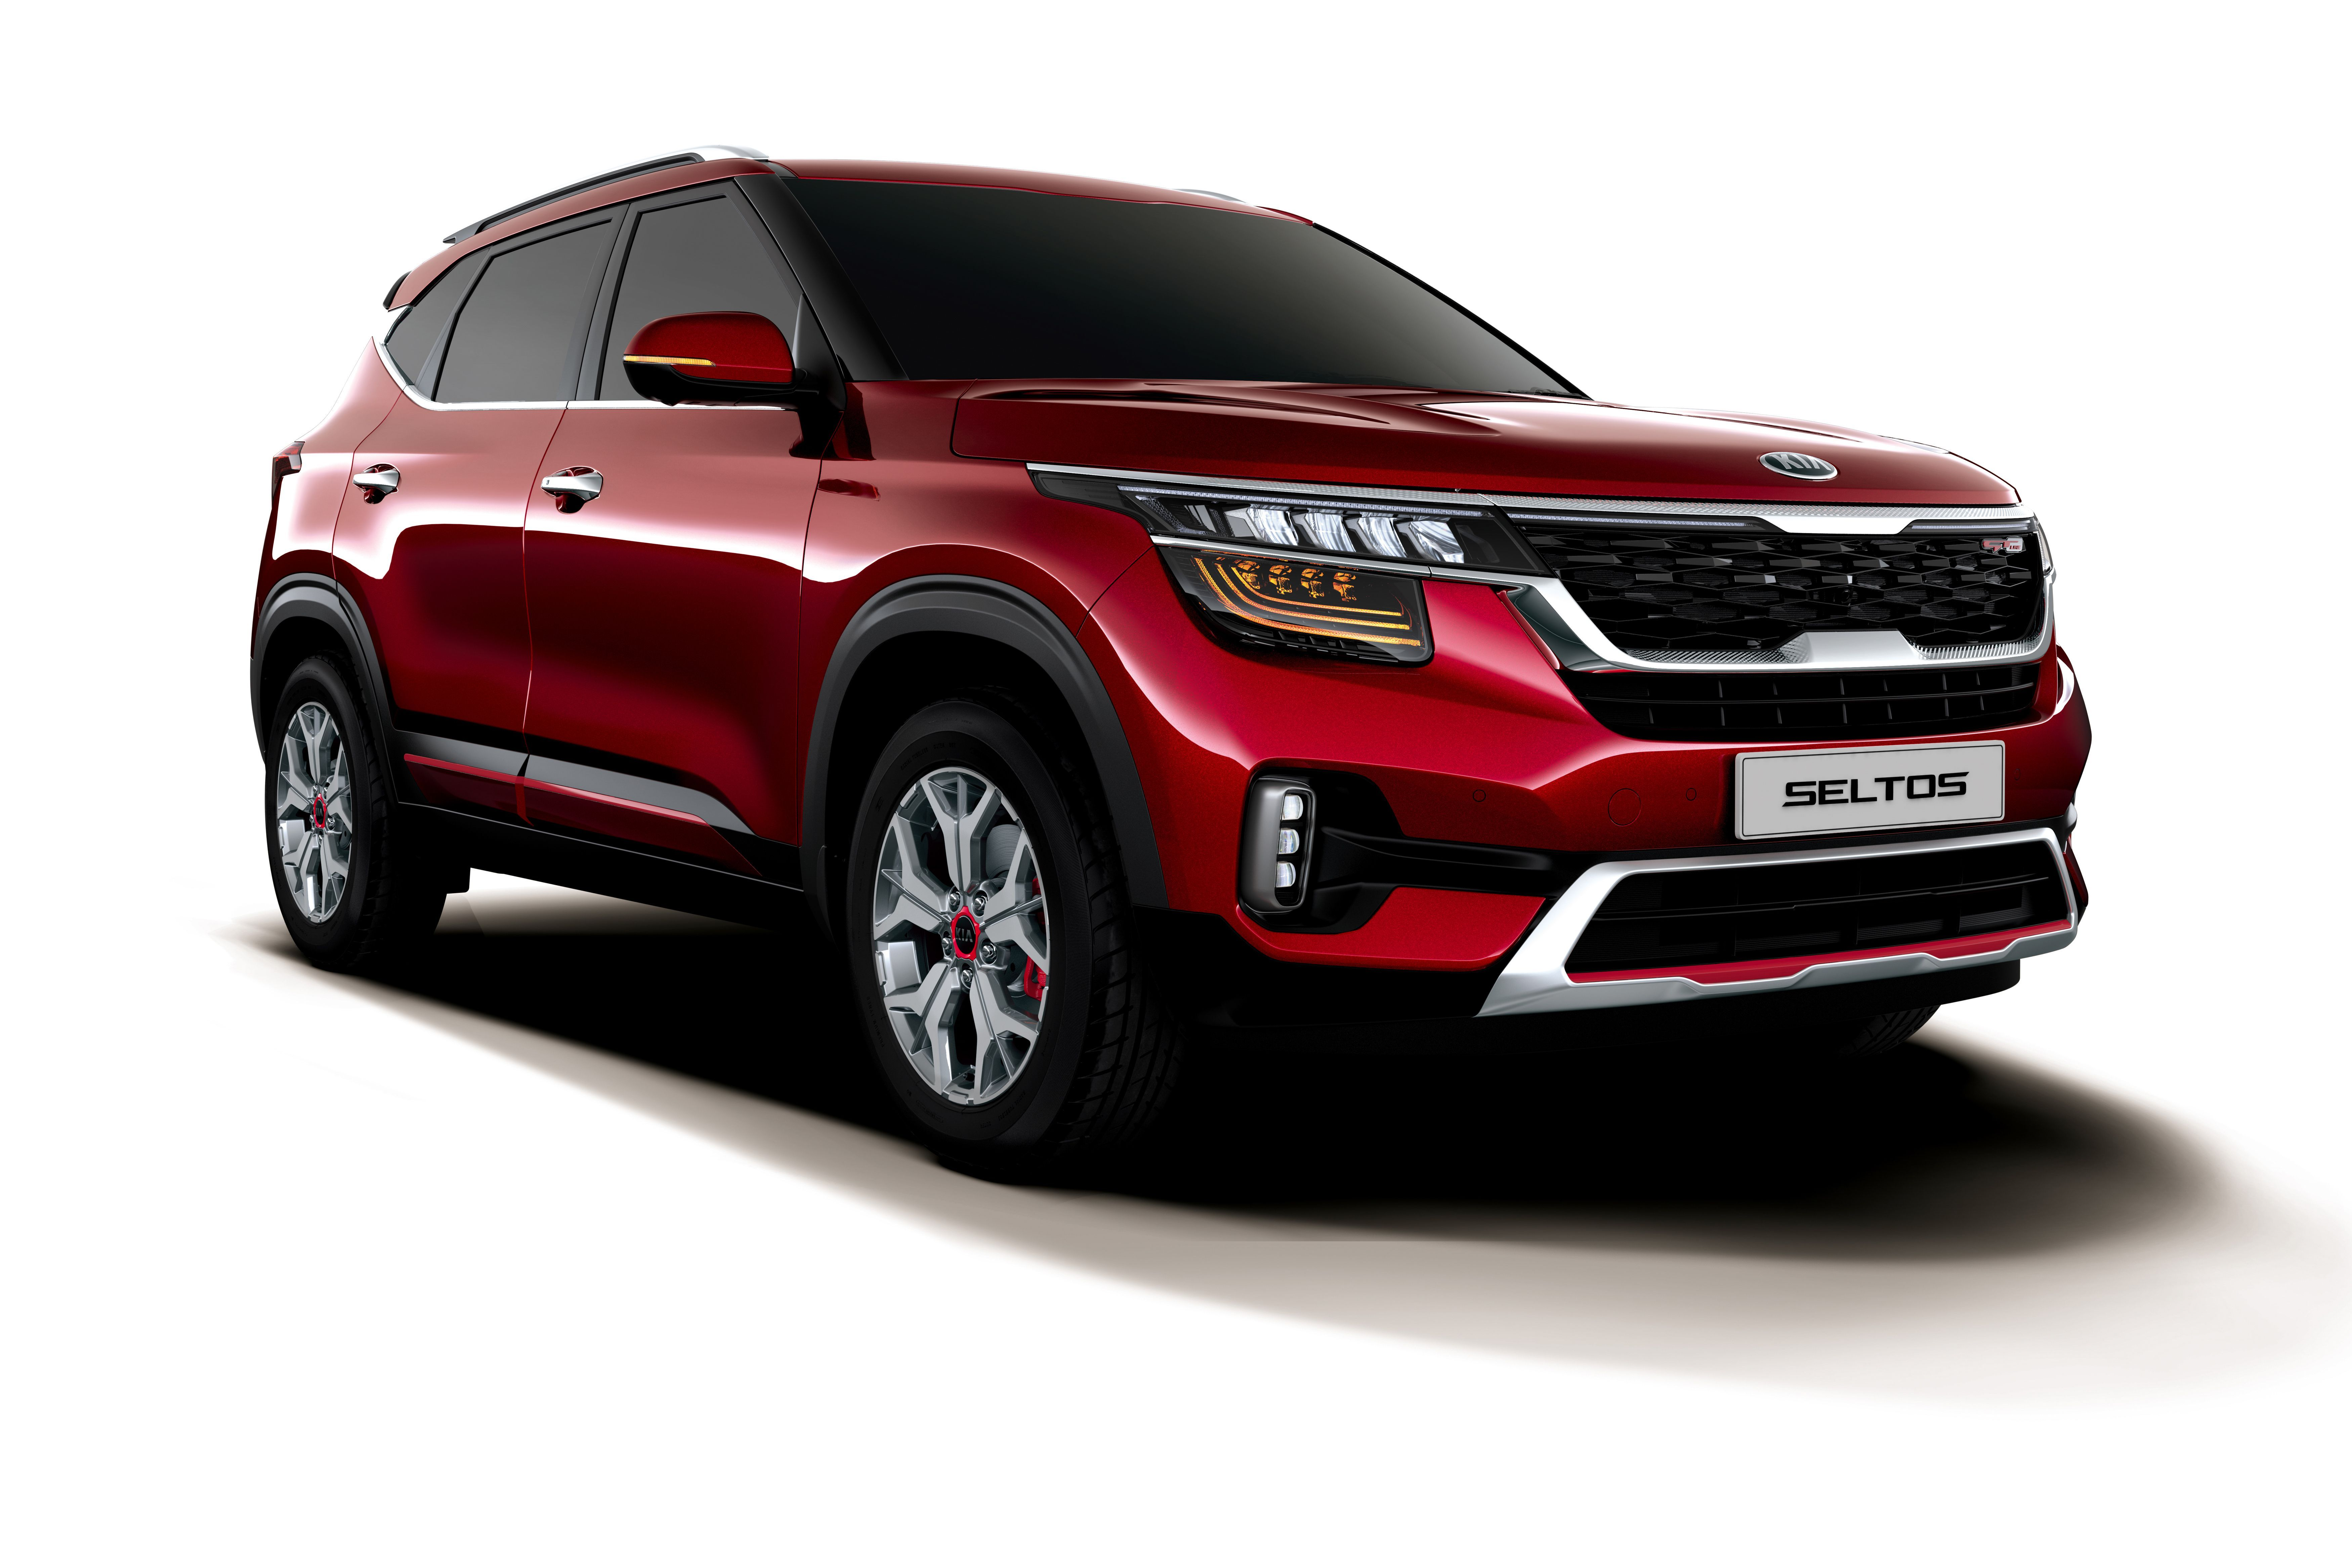 The Kia Seltos Is Yet Another Small Crossover To Fit Between The Soul And Sportage Kia Suv Small Suv